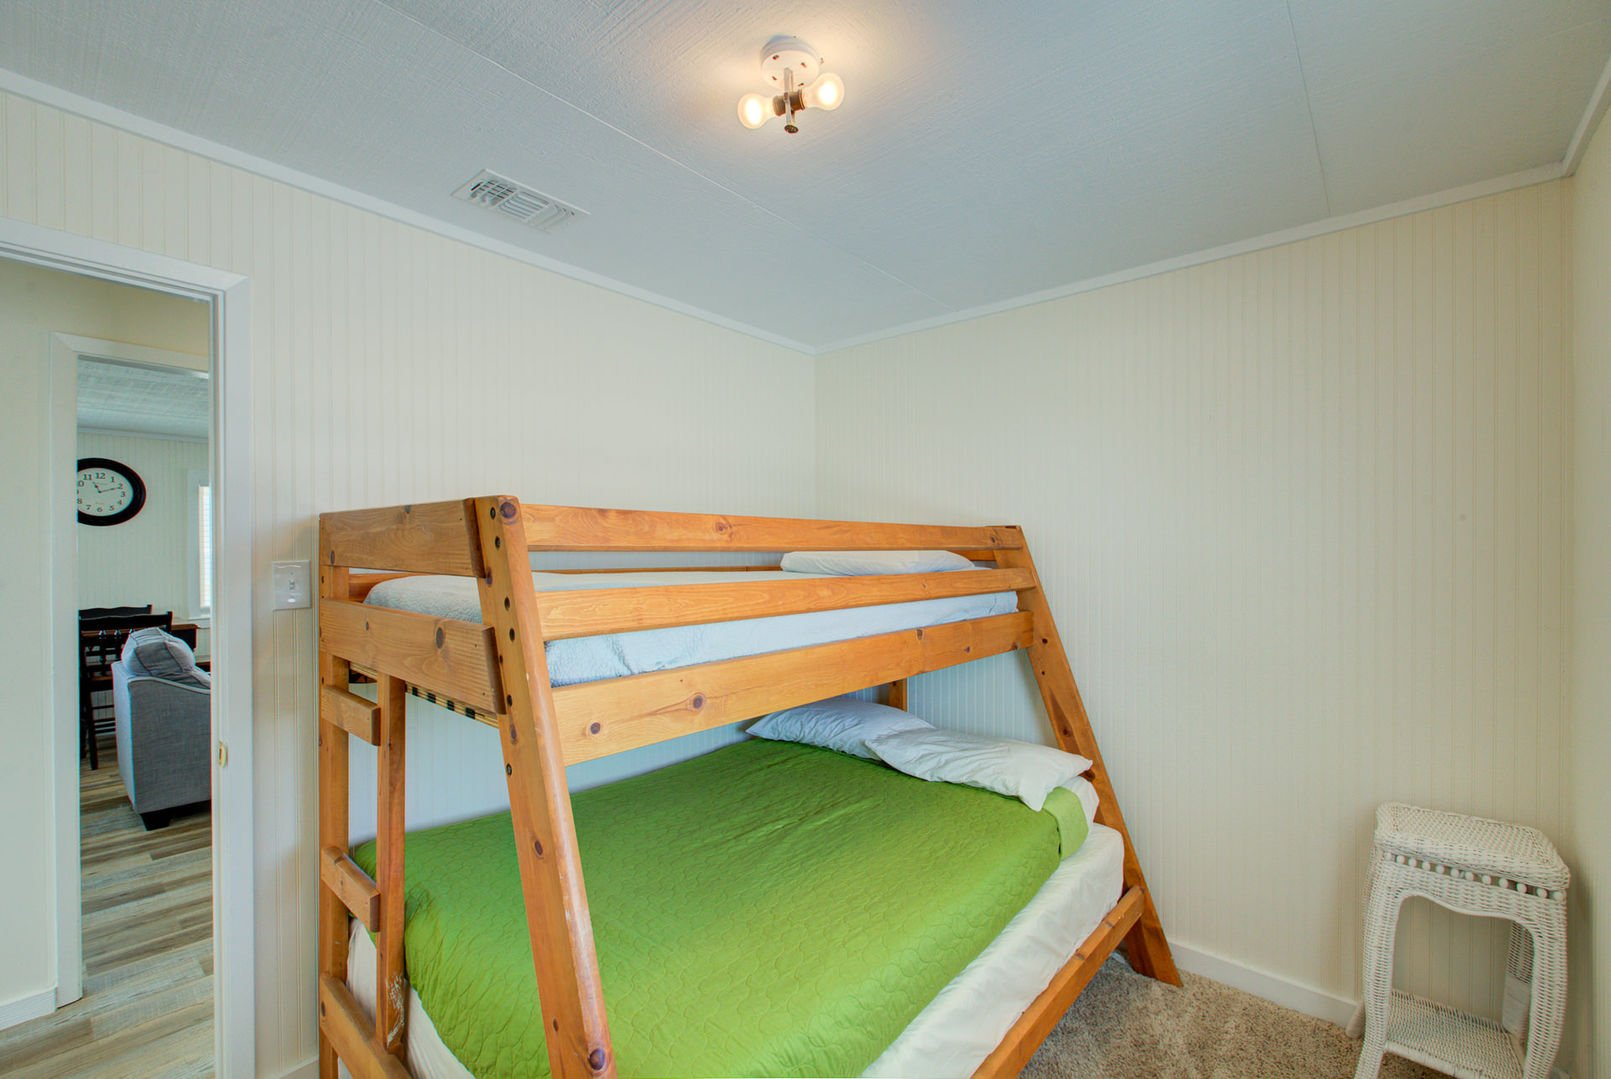 Bedroom #2 sleeps 3 on a bunk bed with a full sized bottom bunk.